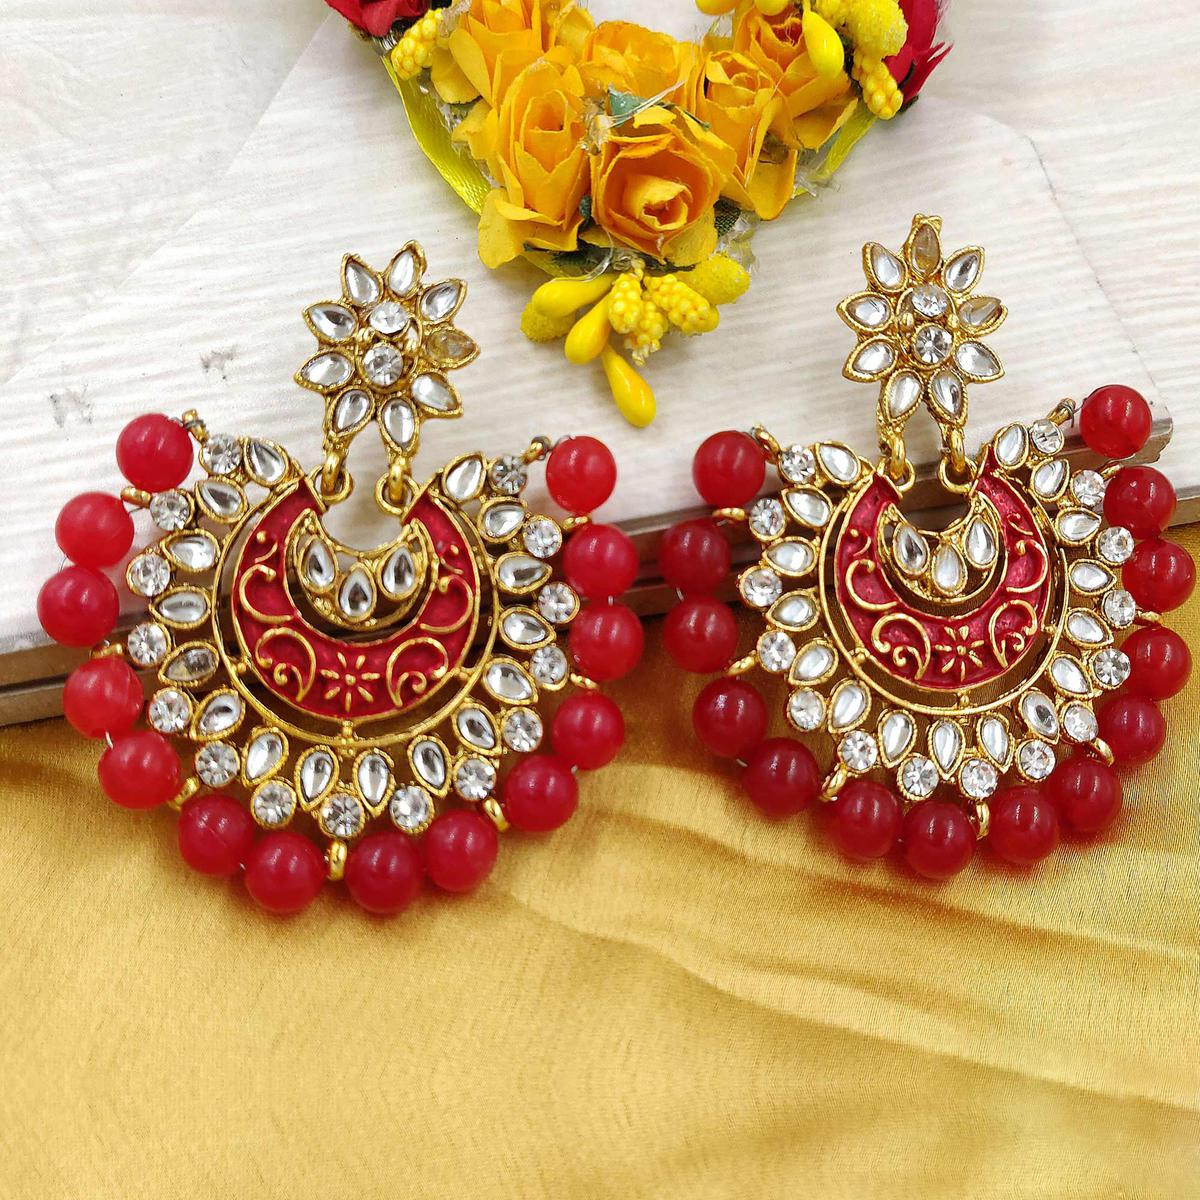 Zaffre Collections - Trending Maroon Chandbali Earrings For Women And Girls